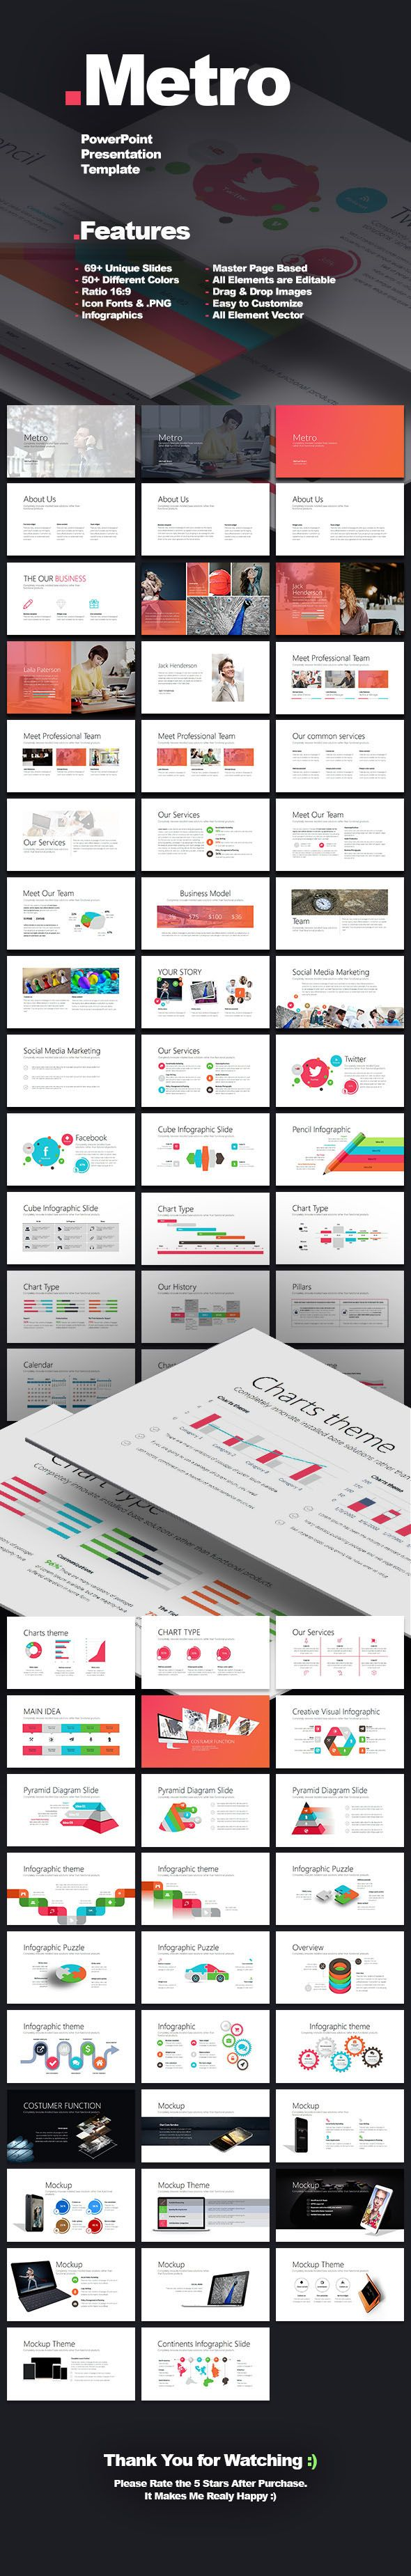 Metro presentation template presentation templates powerpoint metro presentation template toneelgroepblik Image collections